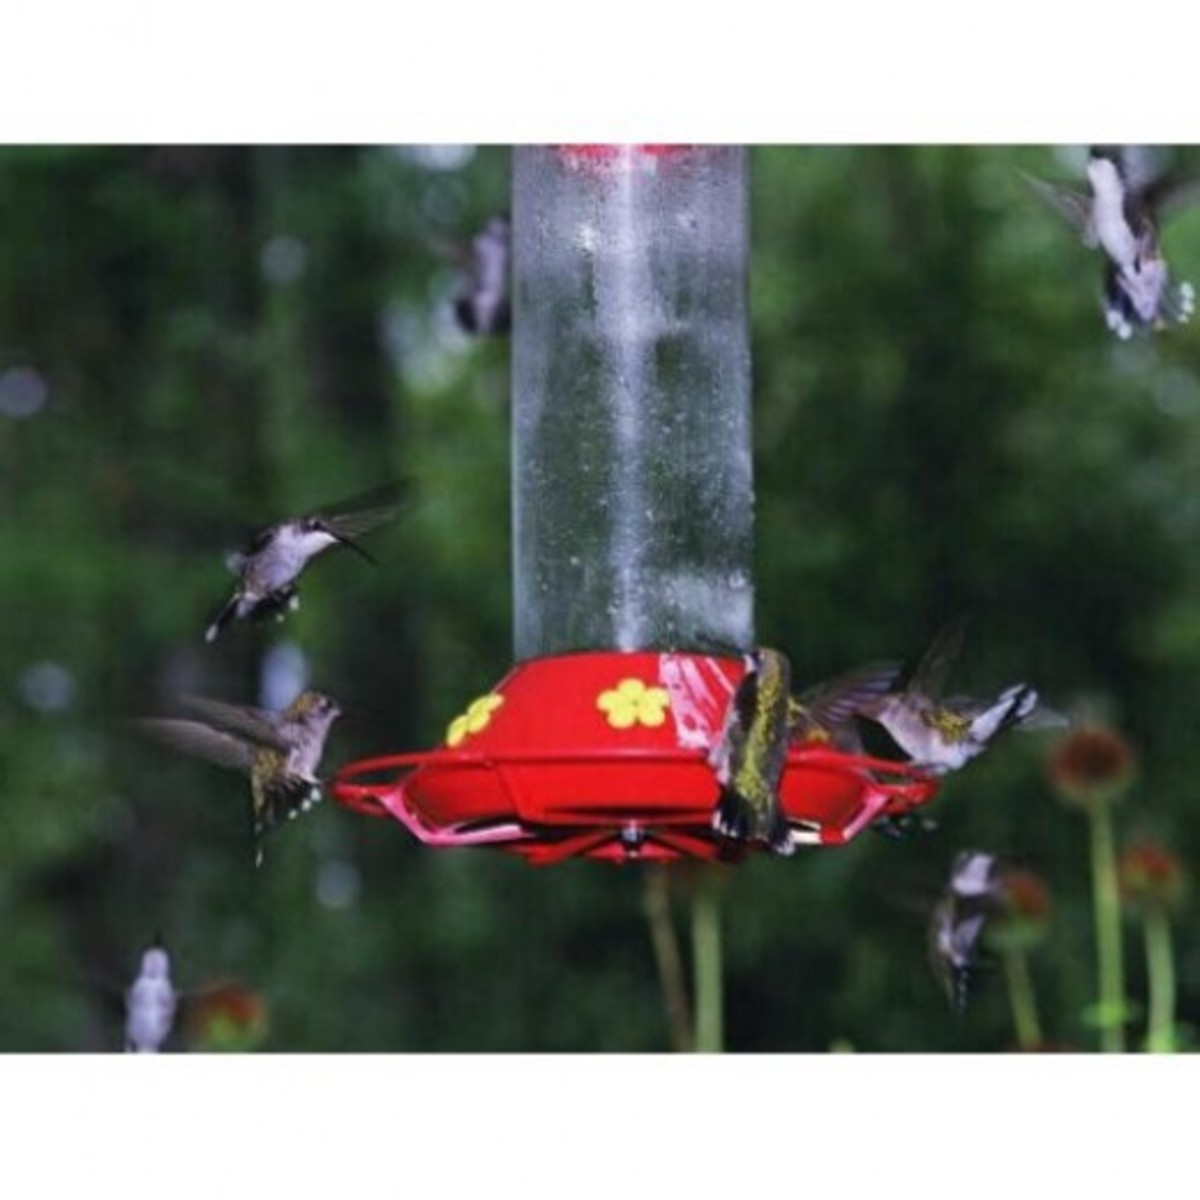 Before Hurricane Katrina, there were thousands on hummingbirds during fall migration in Southeastern Louisiana.